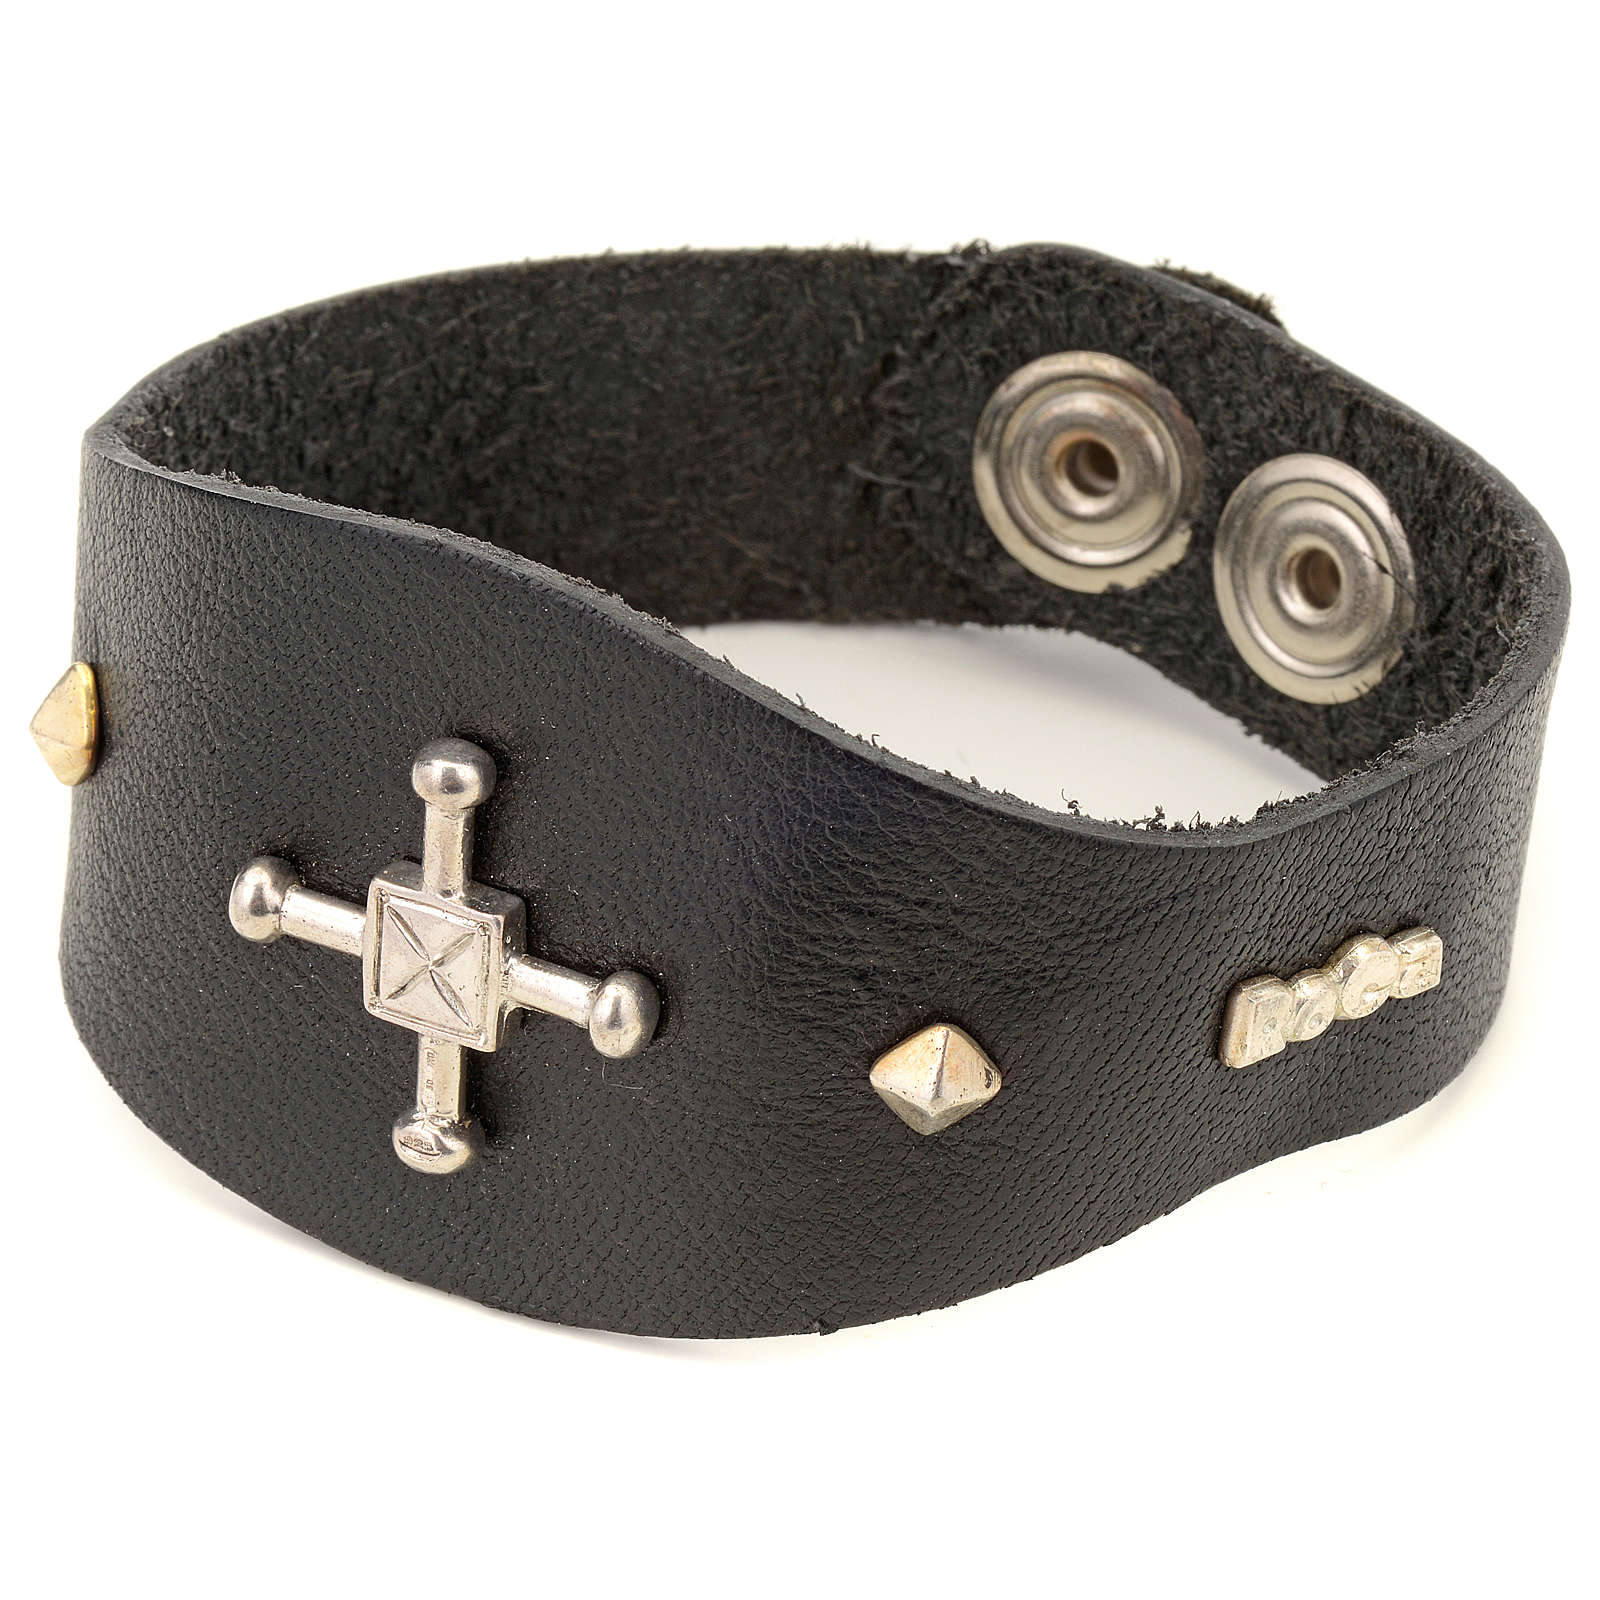 Bracelet in black leather with decorations in sterling silver 4